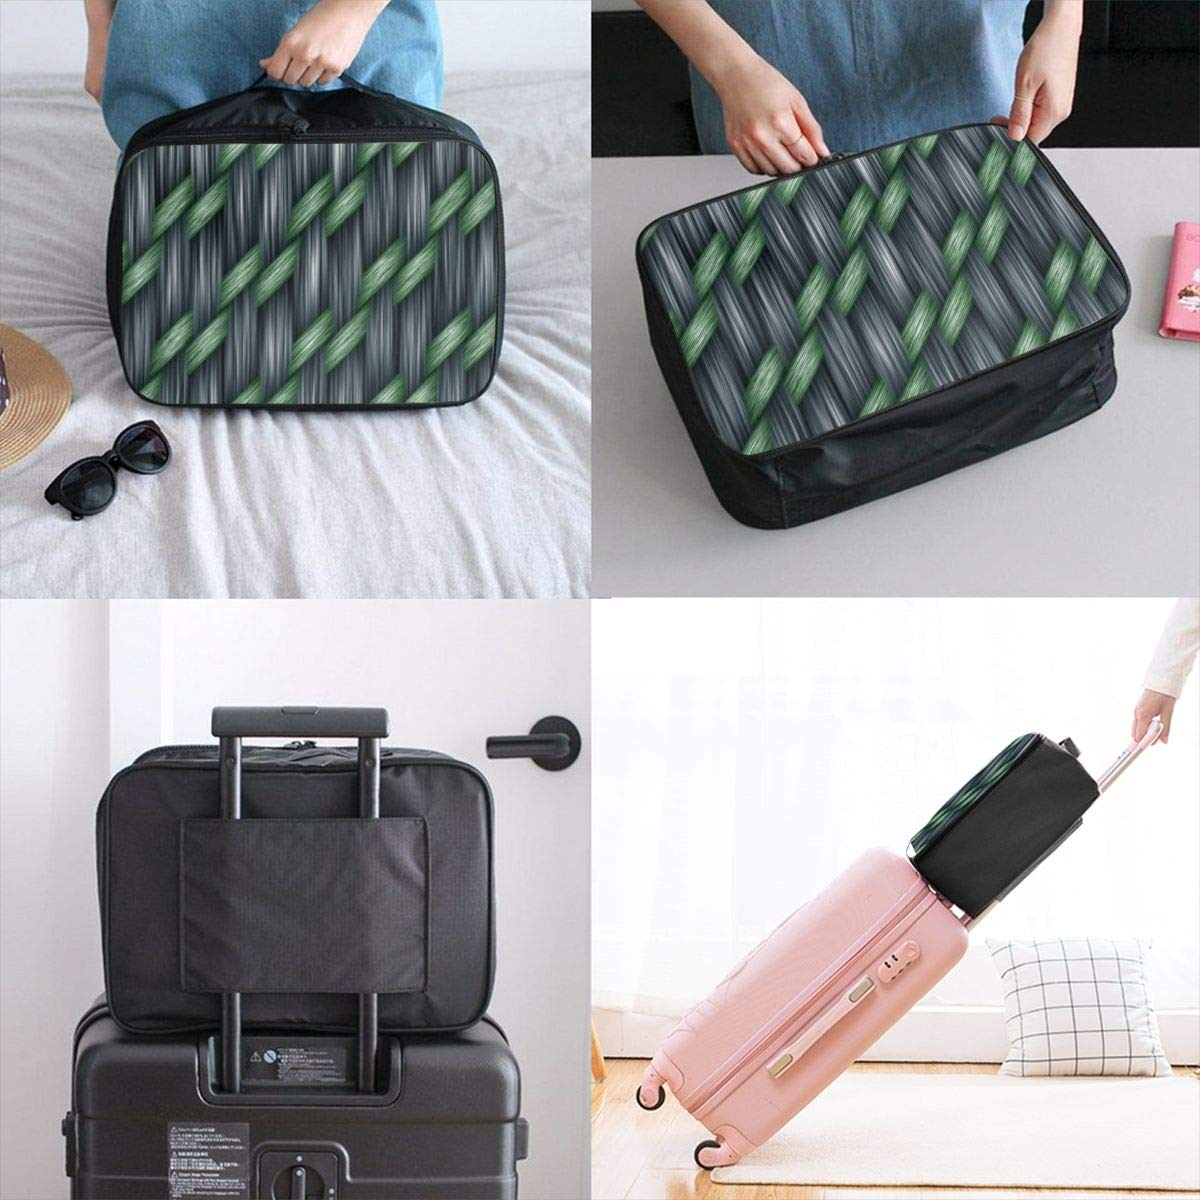 Abstract Art Travel Lightweight Waterproof Foldable Storage Carry Luggage Large Capacity Portable Luggage Bag Duffel Bag